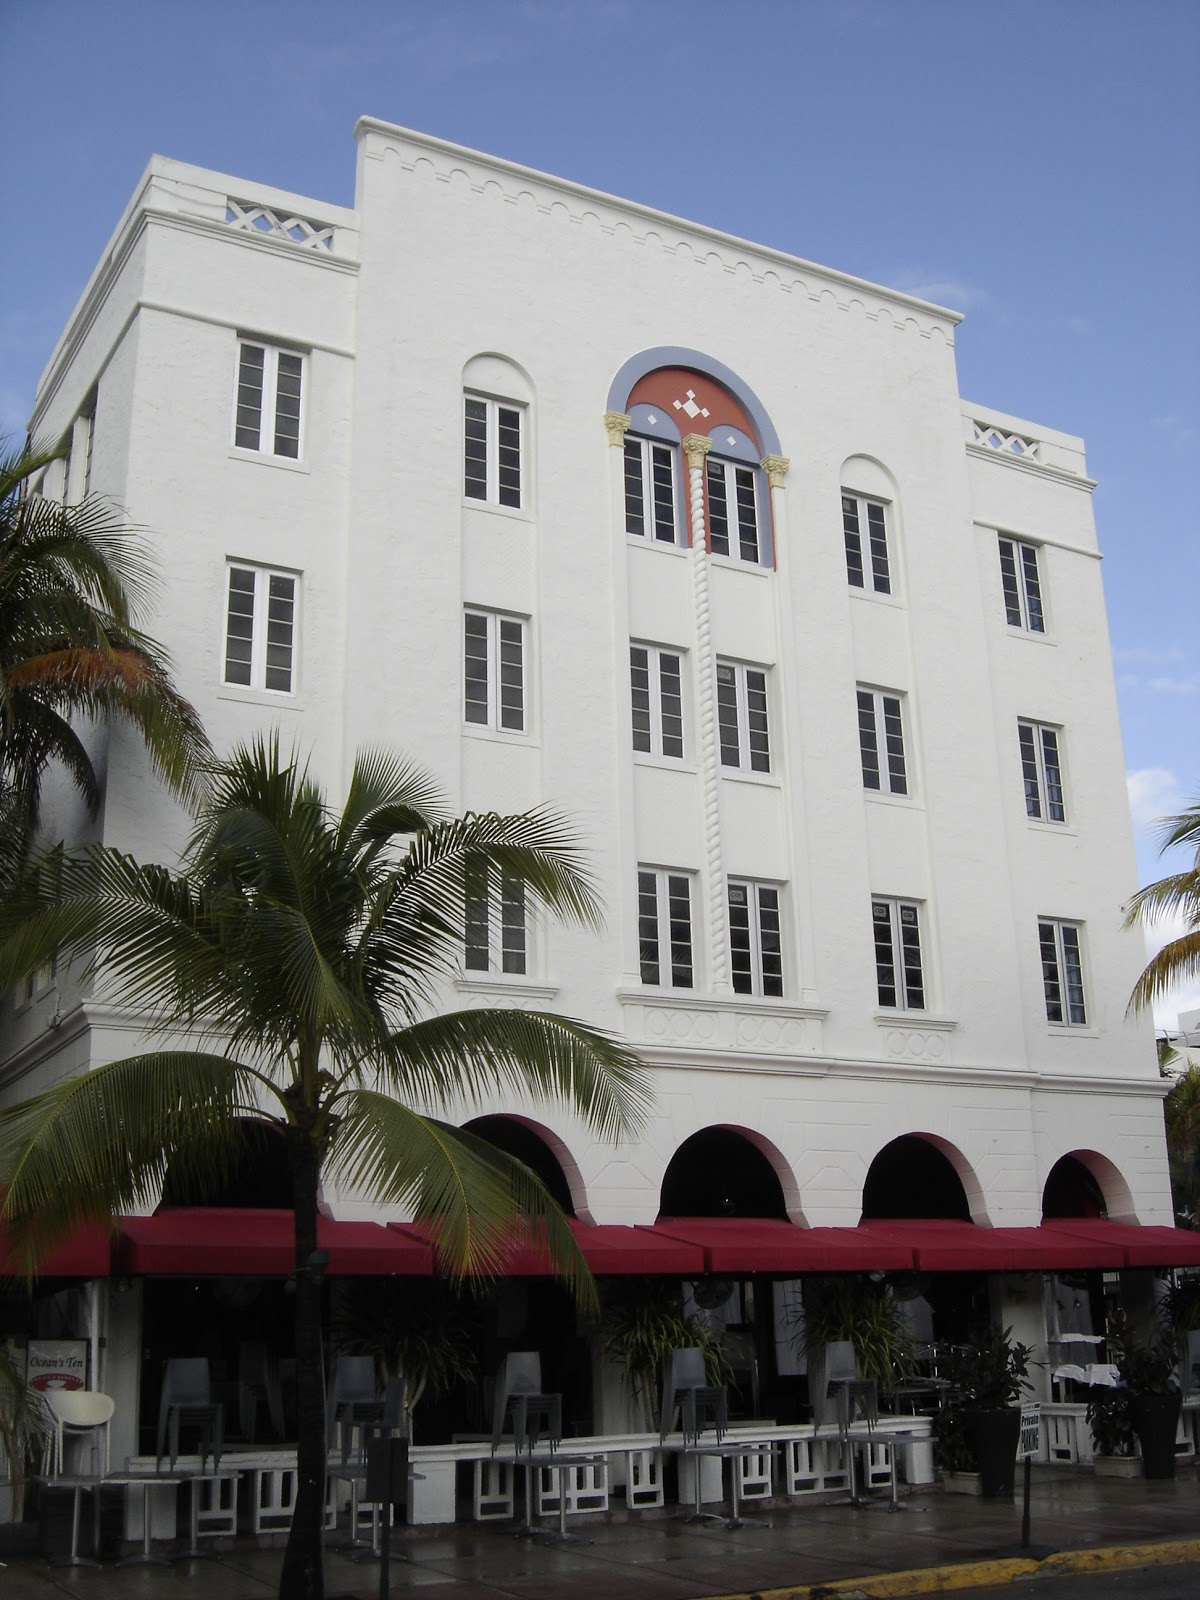 960 Ocean Drive A Henry Hohauser Design From 1935 This Hotel Is Kind Of An Interesting Mix Art Deco And Mediterranean Revival